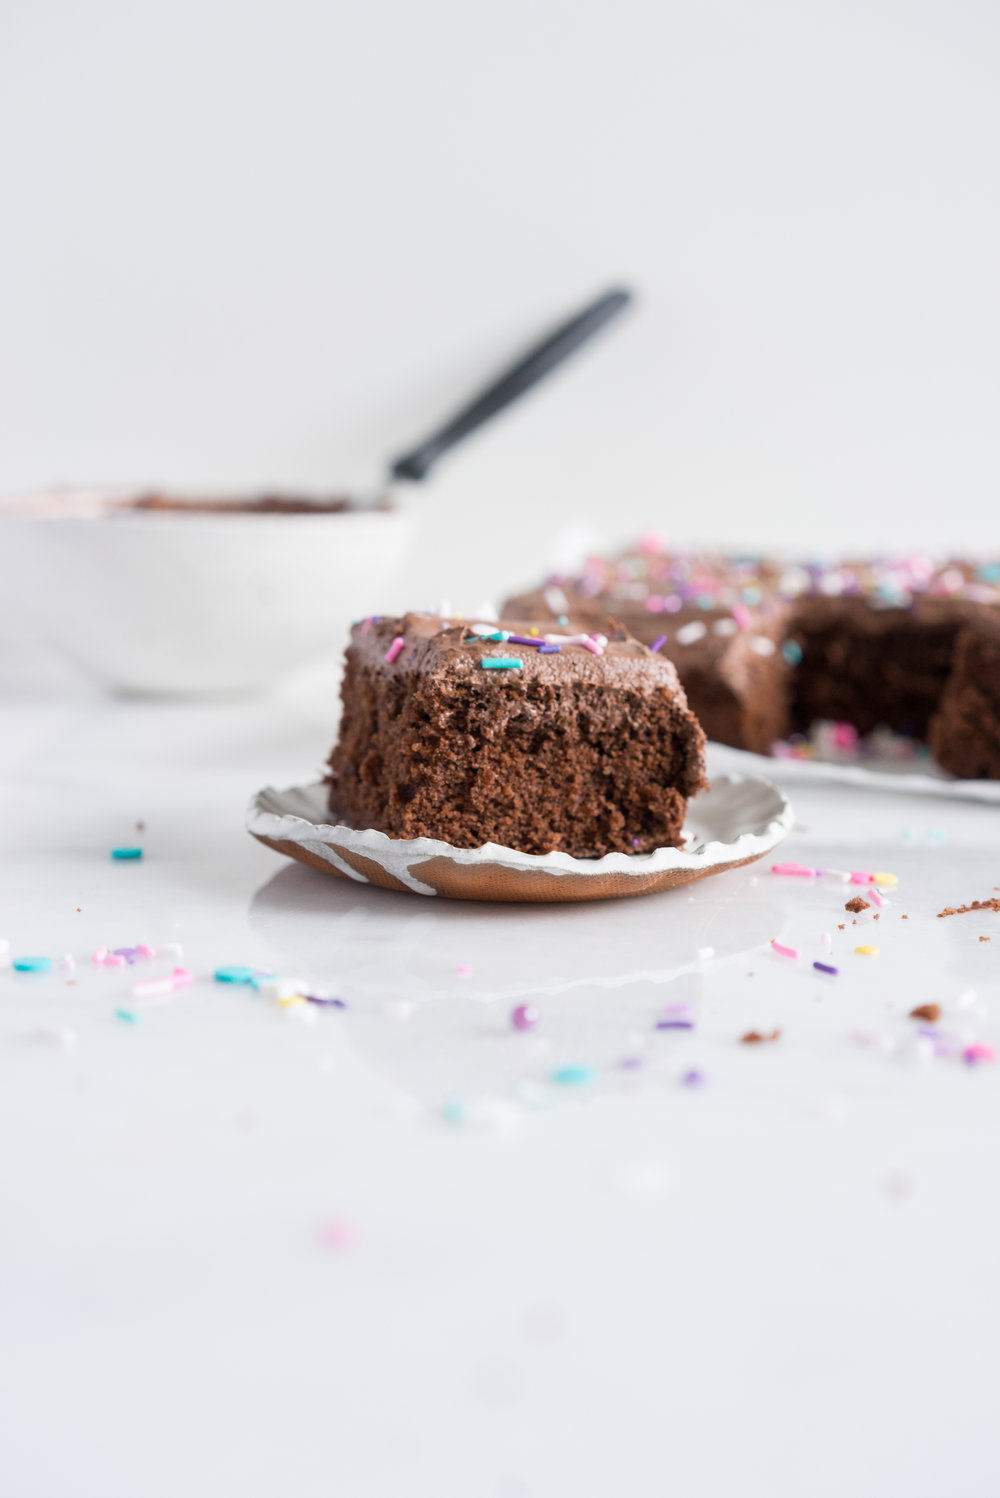 Chocolate Snack Cake with Chocolate Buttercream - the perfect cake recipe to have in your back pocket. Tender chocolate cake topped with fluffy chocolate buttercream #chocolatecake #snackcake